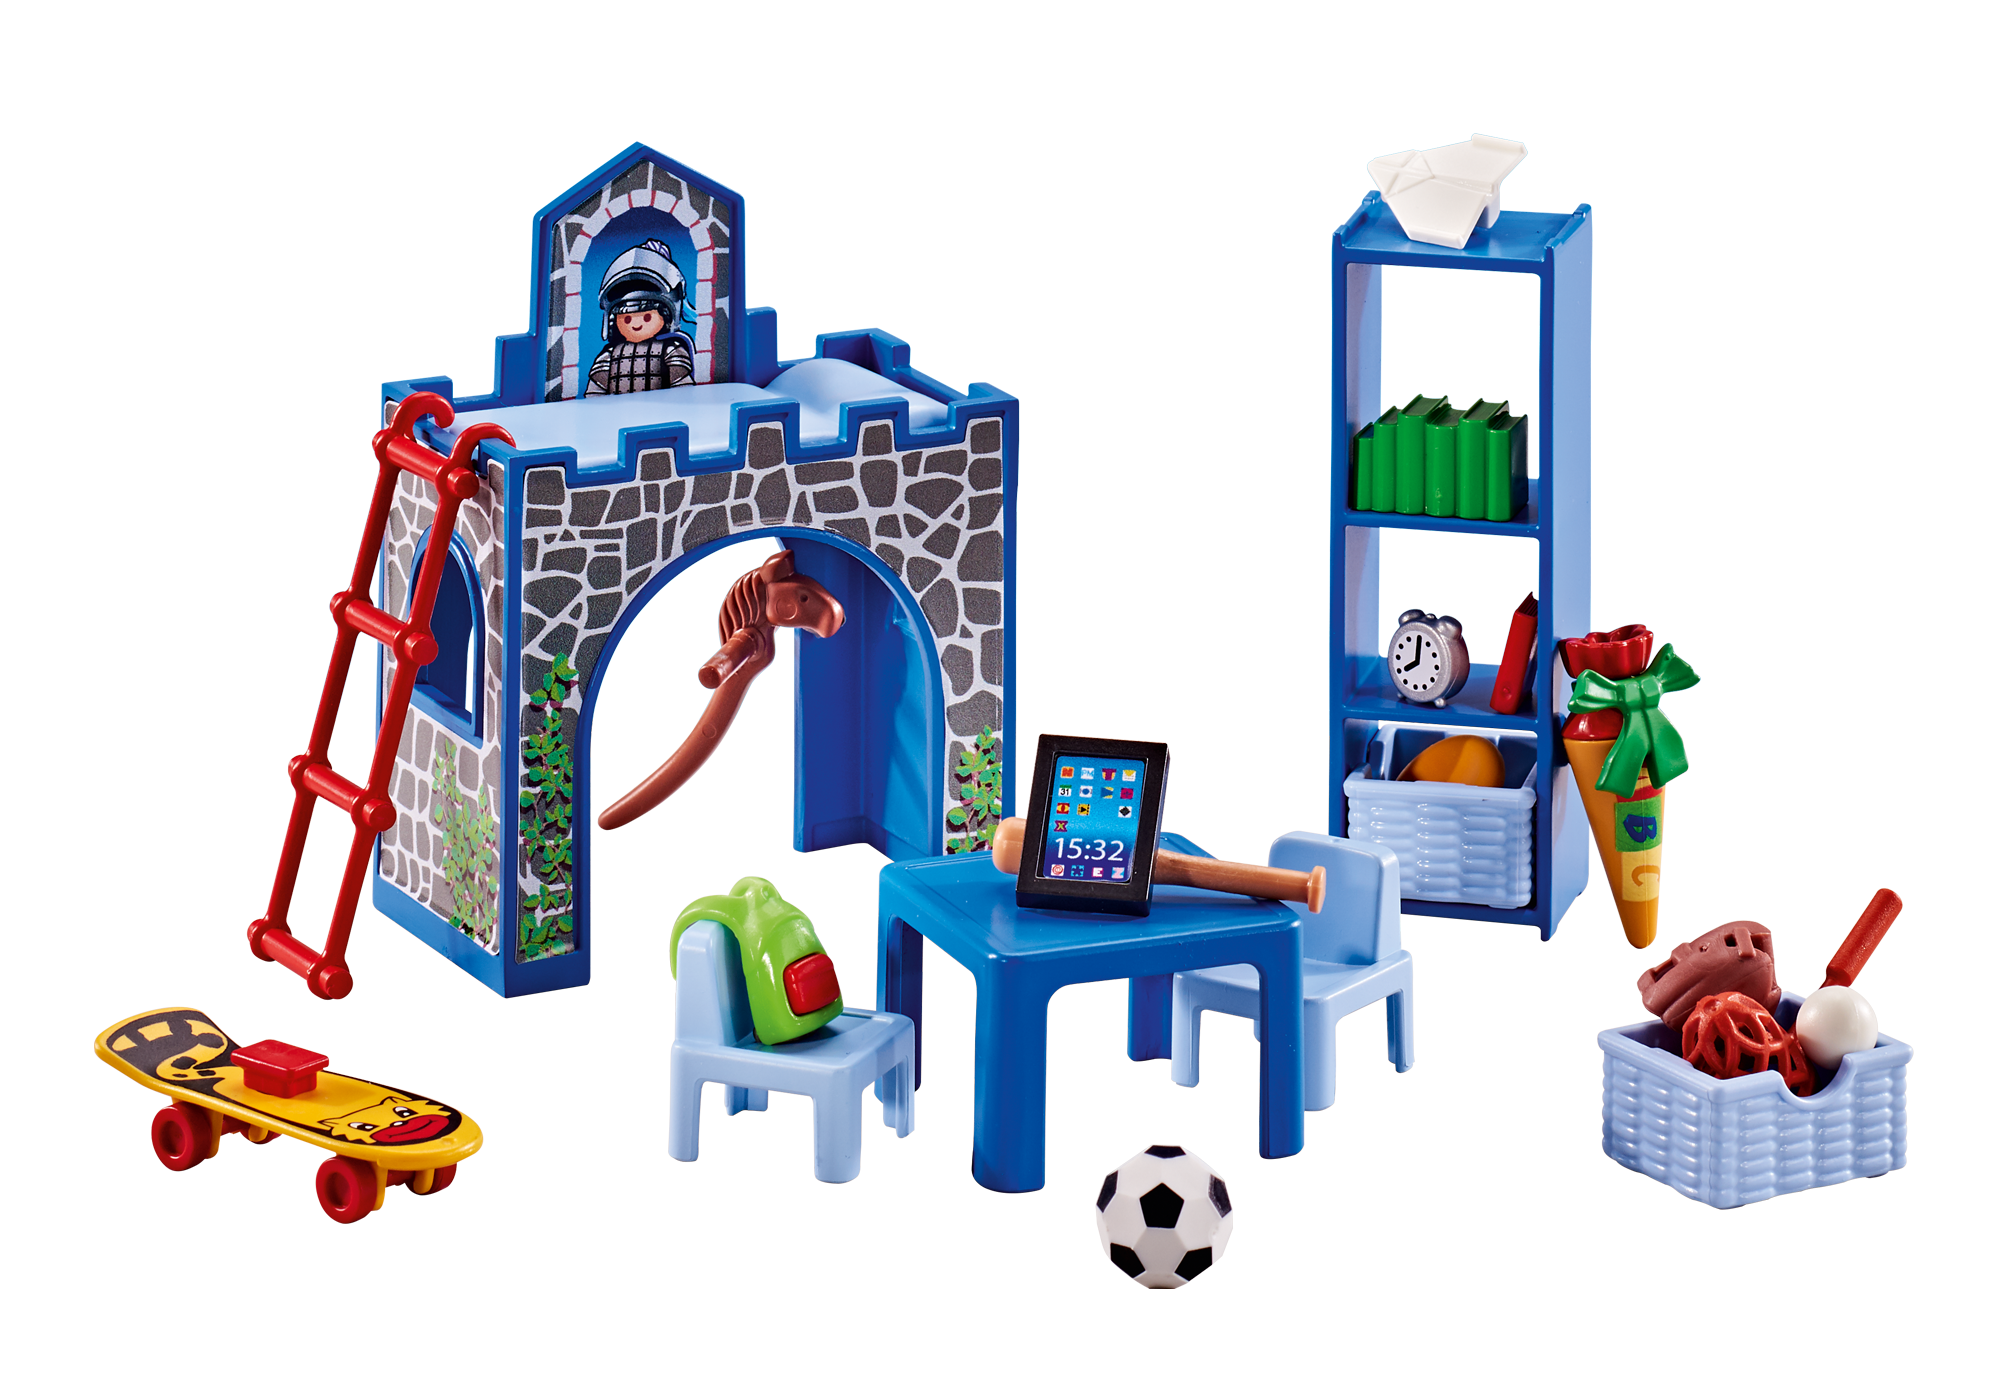 http://media.playmobil.com/i/playmobil/6556_product_detail/Børneværelse